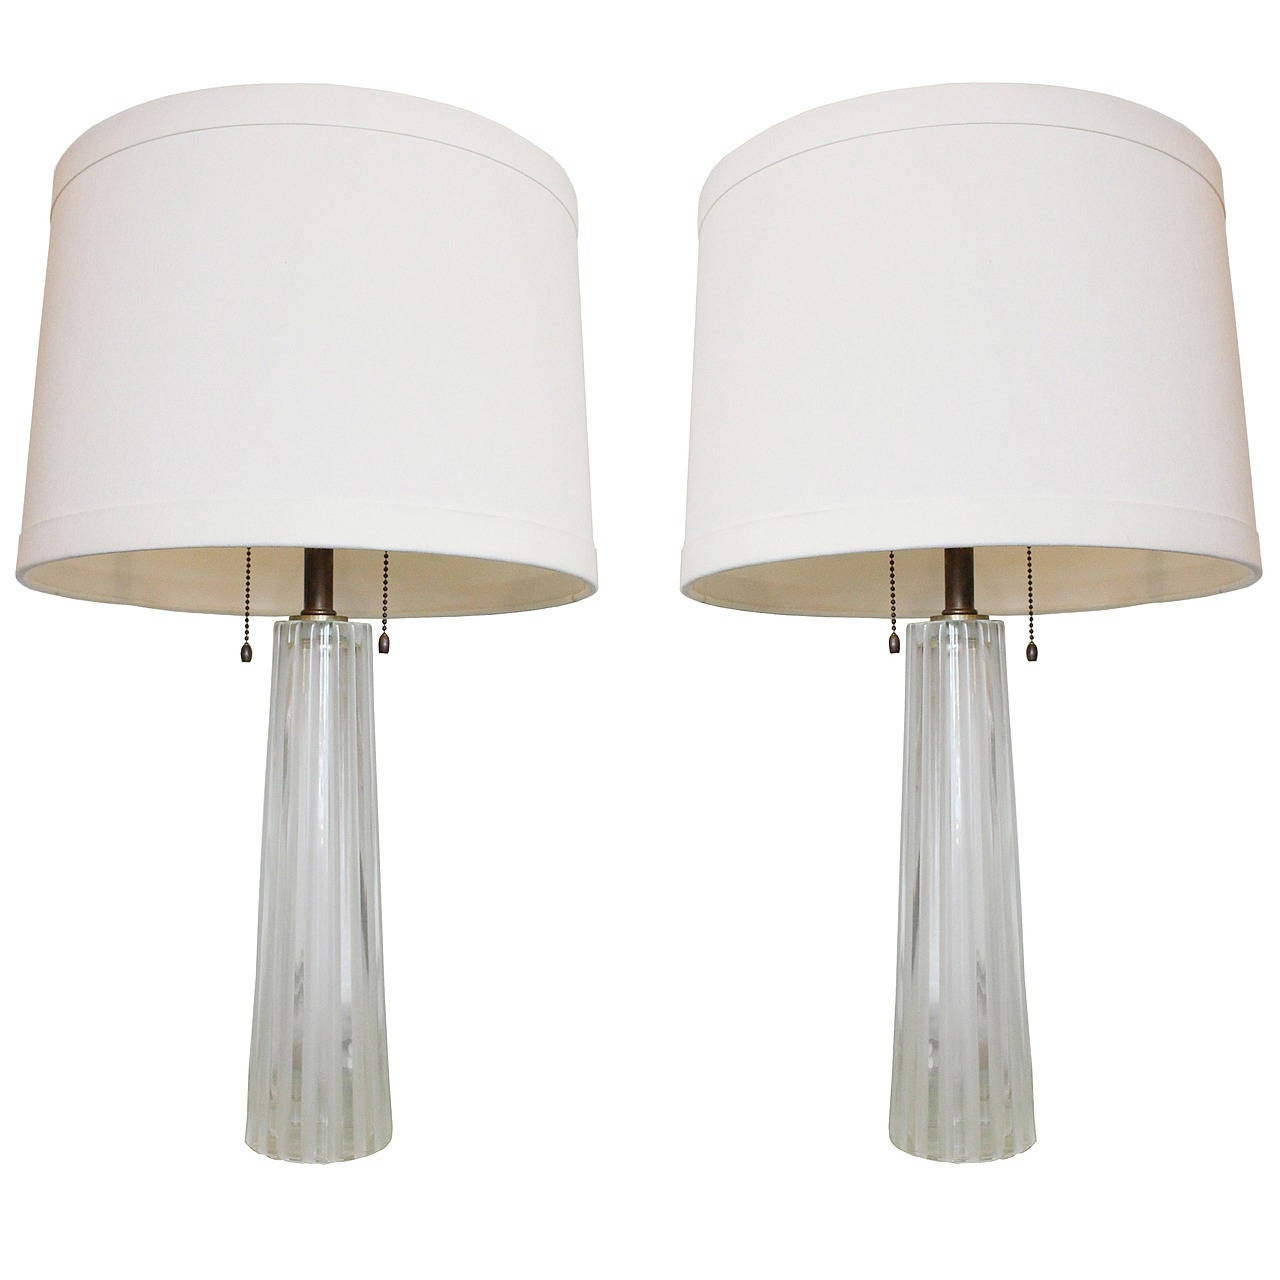 pair of barbara barry crystal lamps for sale at 1stdibs. Black Bedroom Furniture Sets. Home Design Ideas